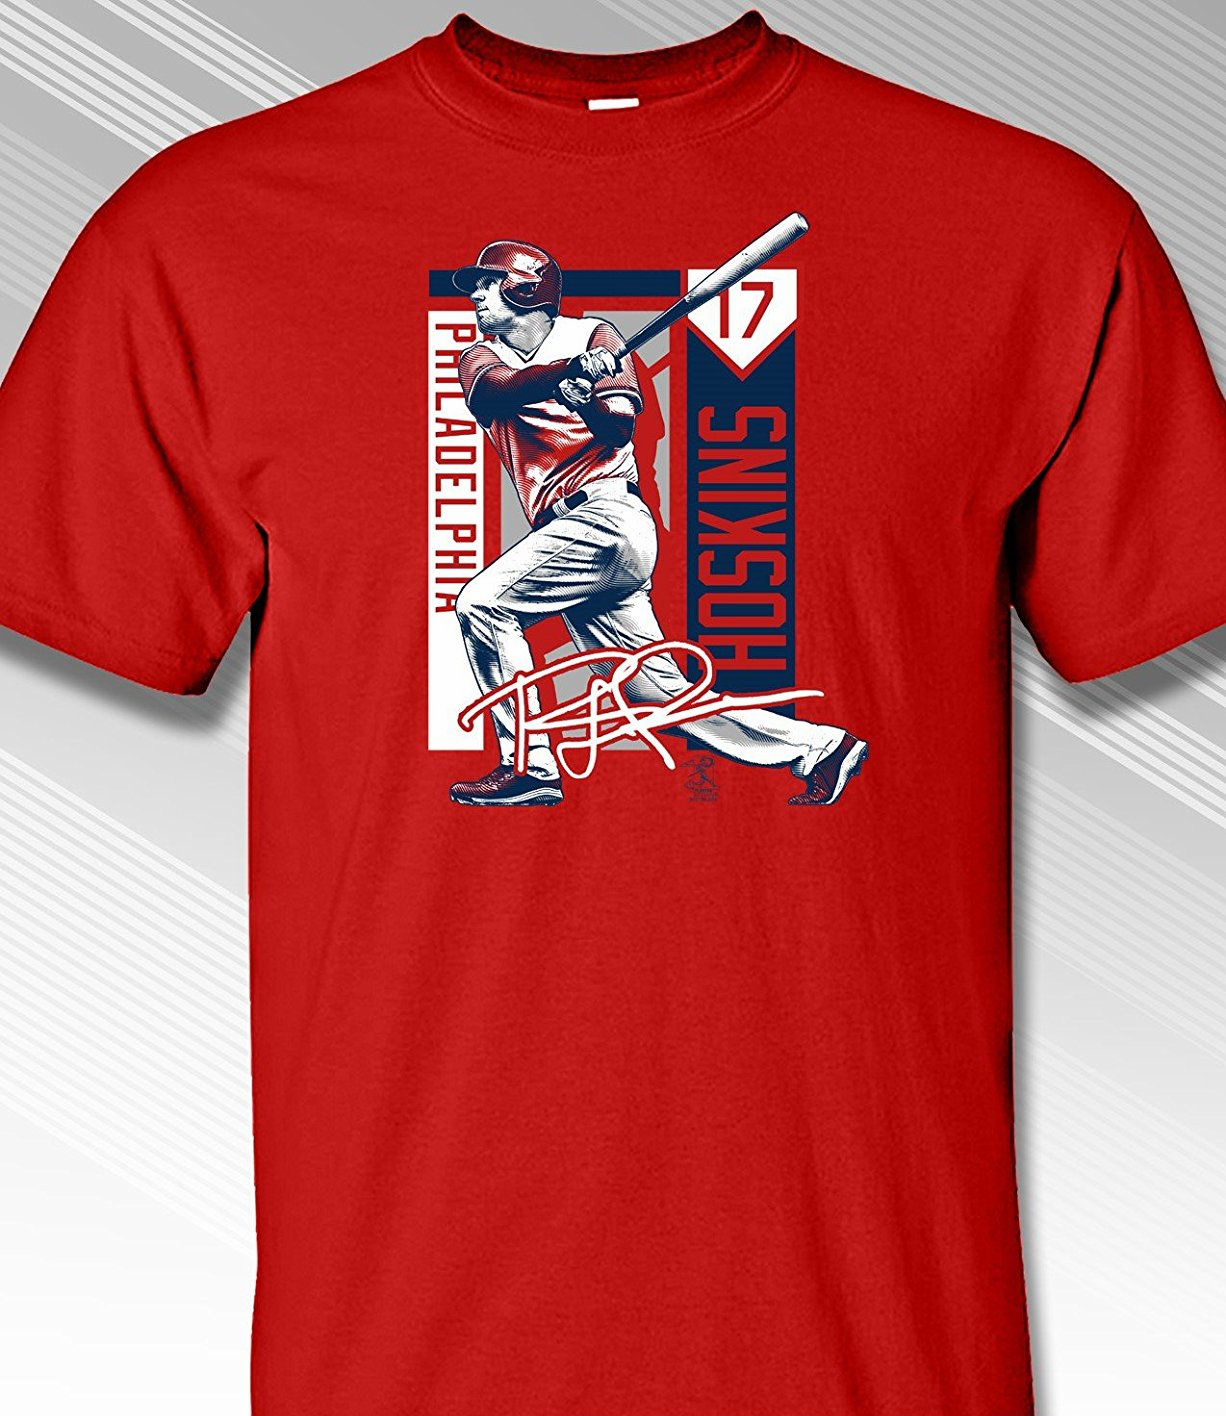 Rhys Hoskins Philadelphia Colorblock T-Shirt<br>Short or Long Sleeve<br>Youth Med to Adult 4X